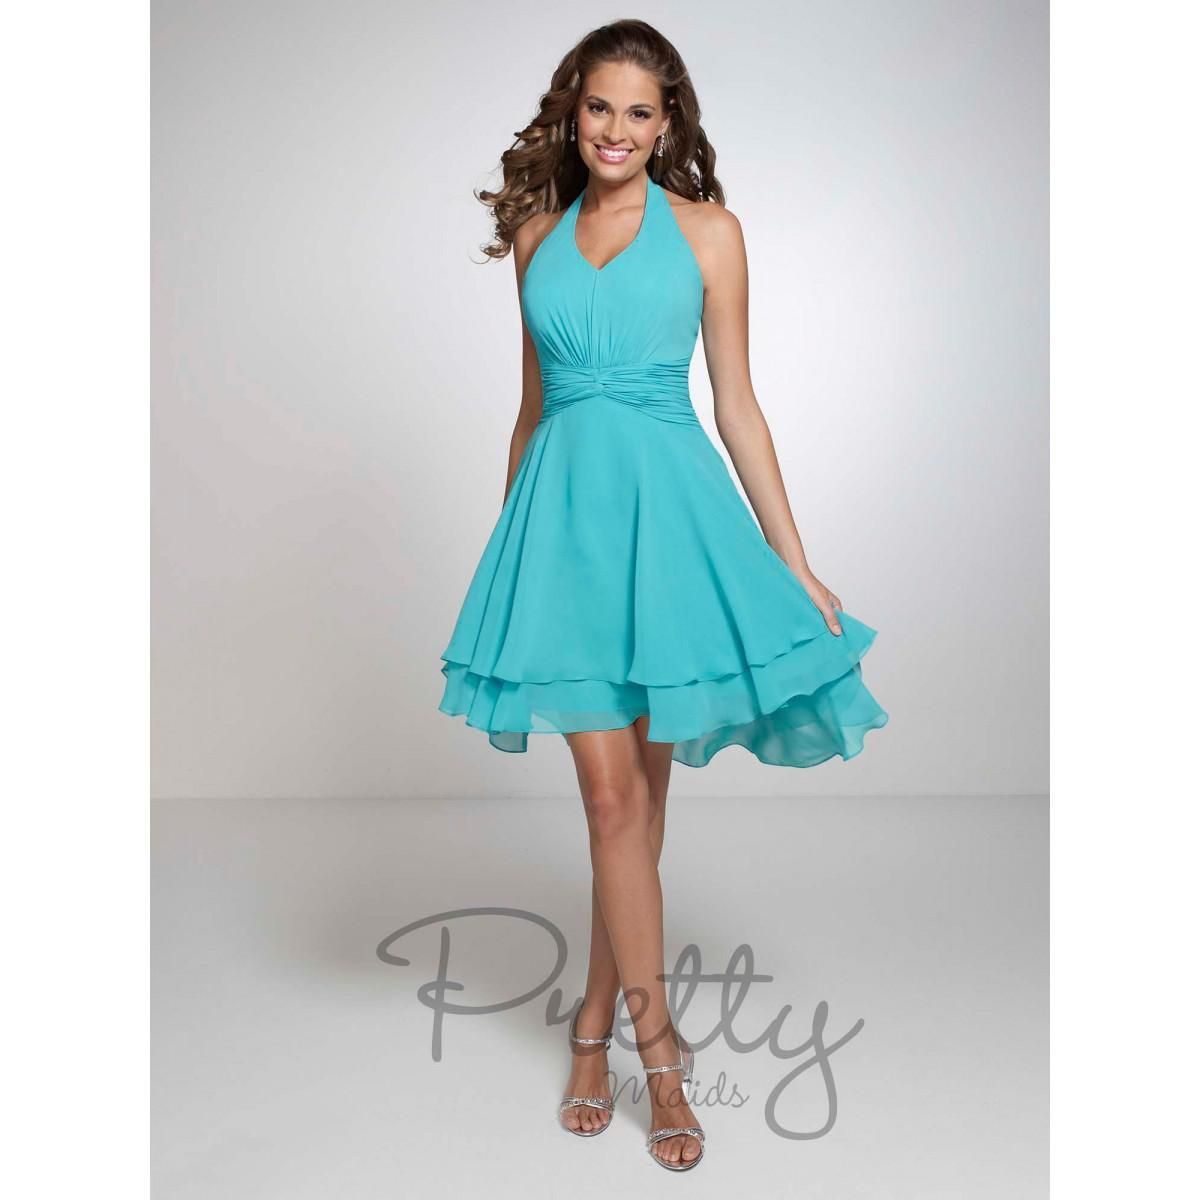 Turquoise halter chiffon short bridesmaid dresses 2015 mini turquoise halter chiffon short bridesmaid dresses 2015 mini ruffles a line ruched cheap evening dresses backless ombrellifo Image collections